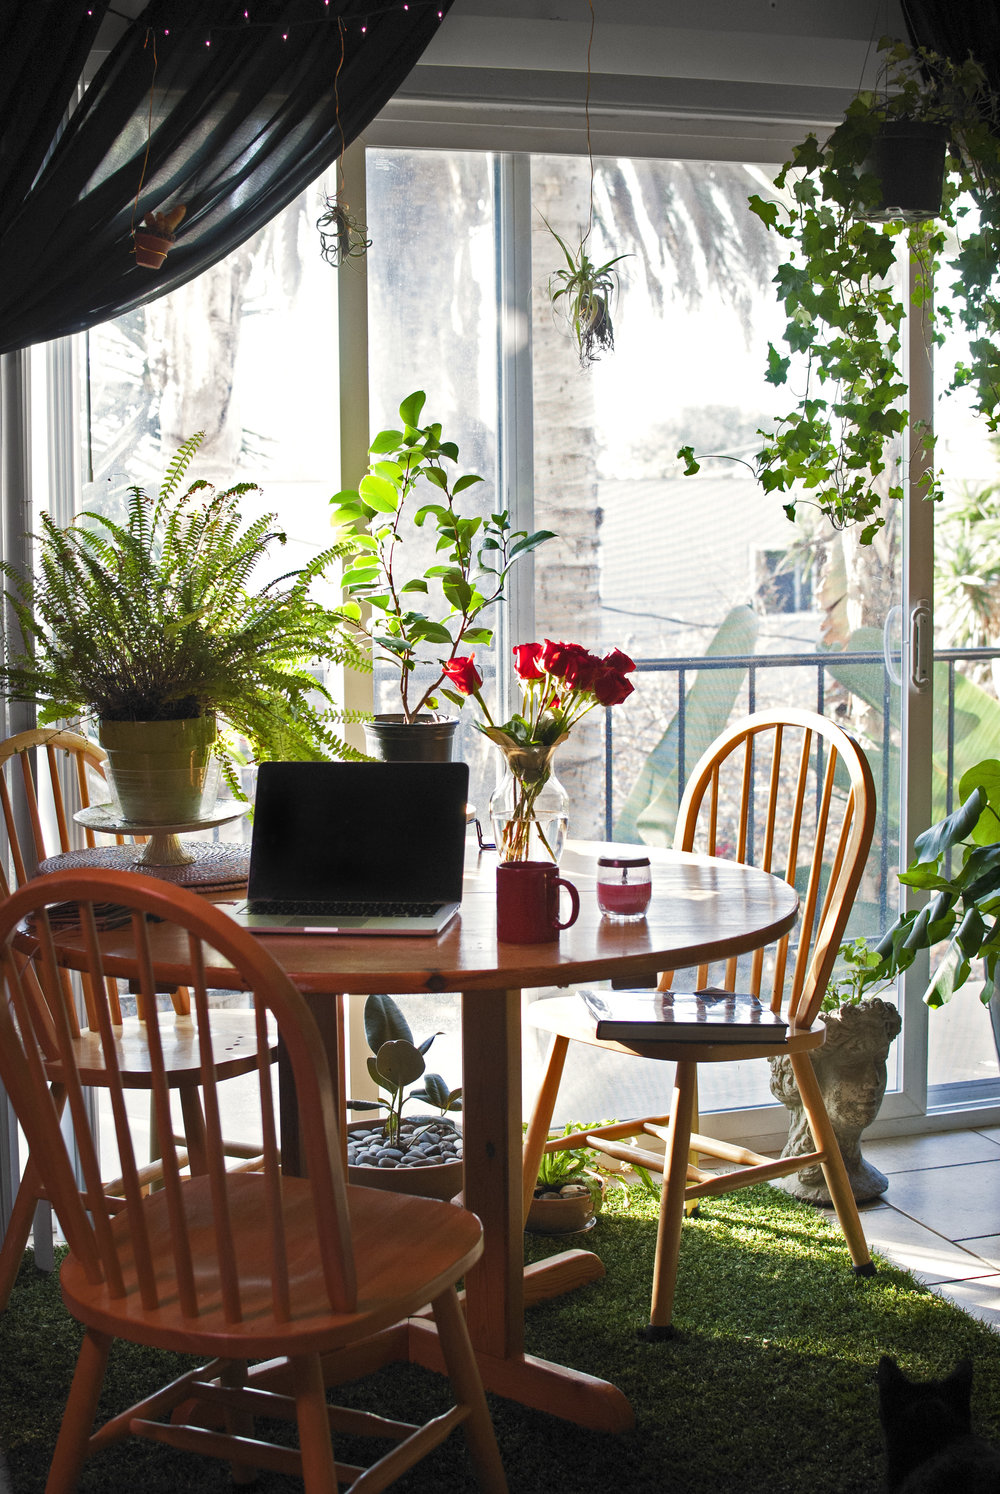 I'll miss drinking coffee at this table, studying, writing, and working on creative projects here.  DETAILS -Cake stand as plant stand -Goddess blooming begonias -Plants hanging from fairy lights -Grass rug